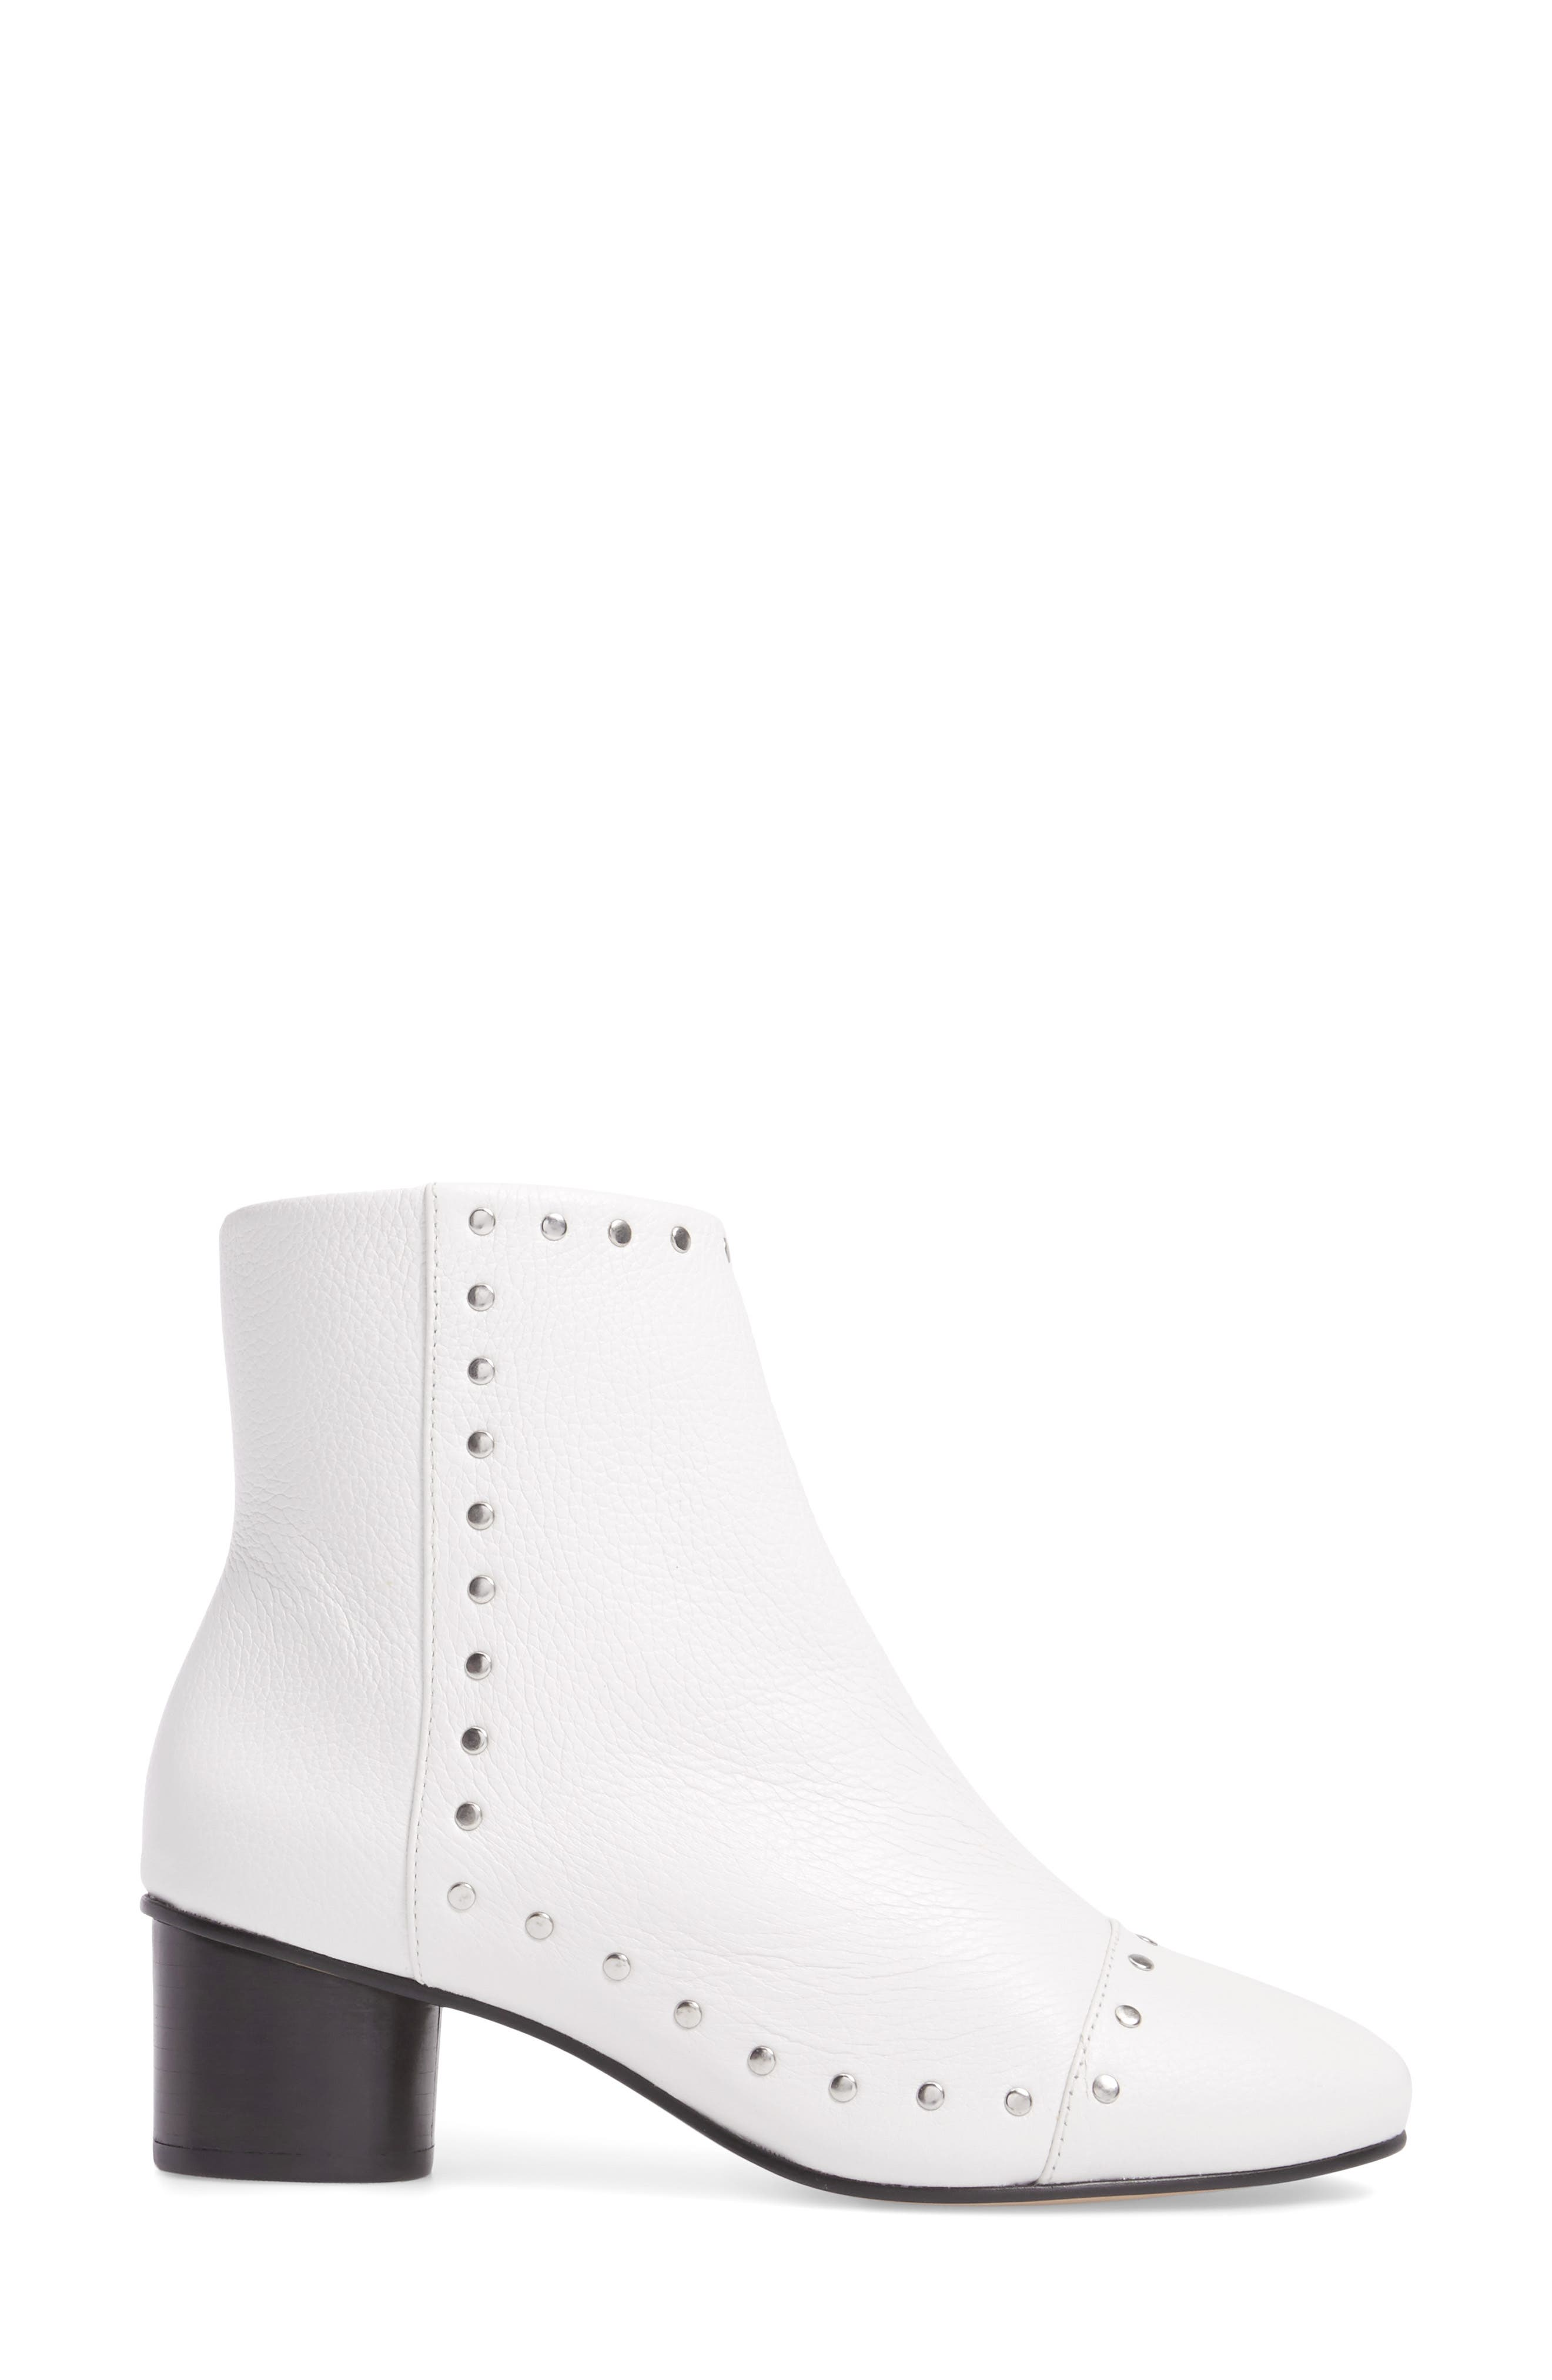 Isley Bootie,                             Alternate thumbnail 8, color,